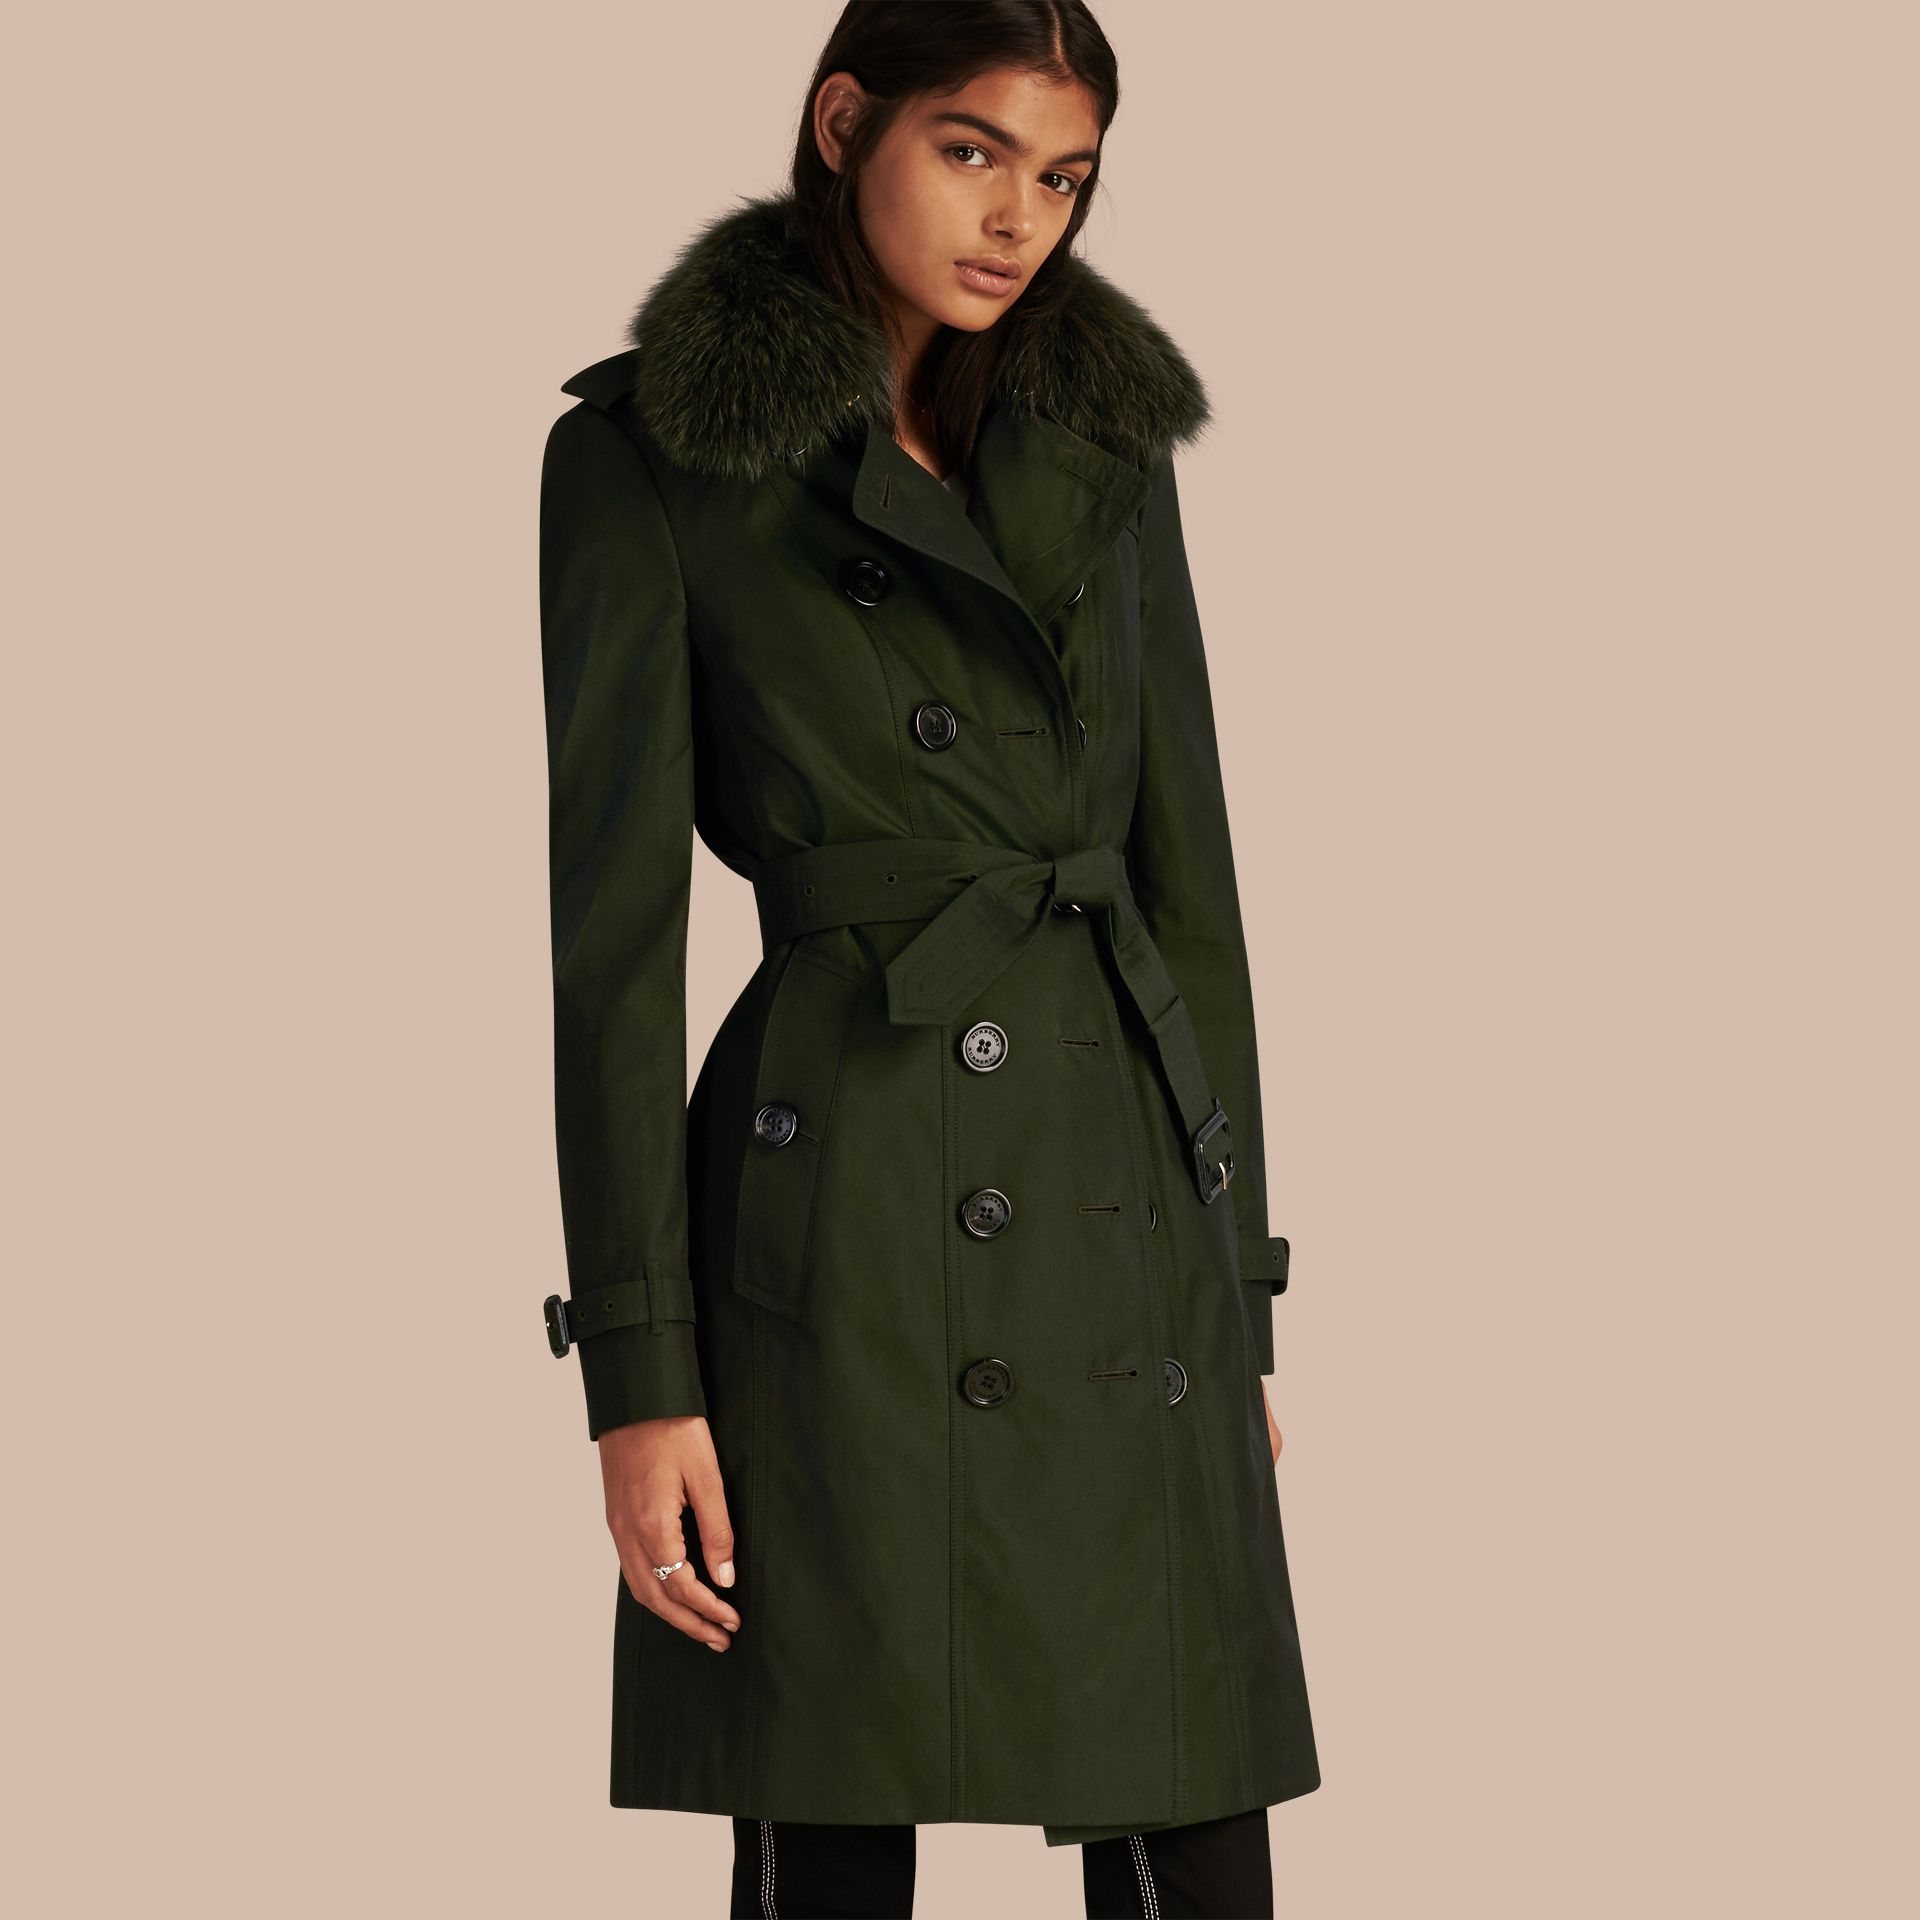 Dark cedar green Cotton Gabardine Trench Coat with Detachable Fur Trim Dark Cedar Green - gallery image 1